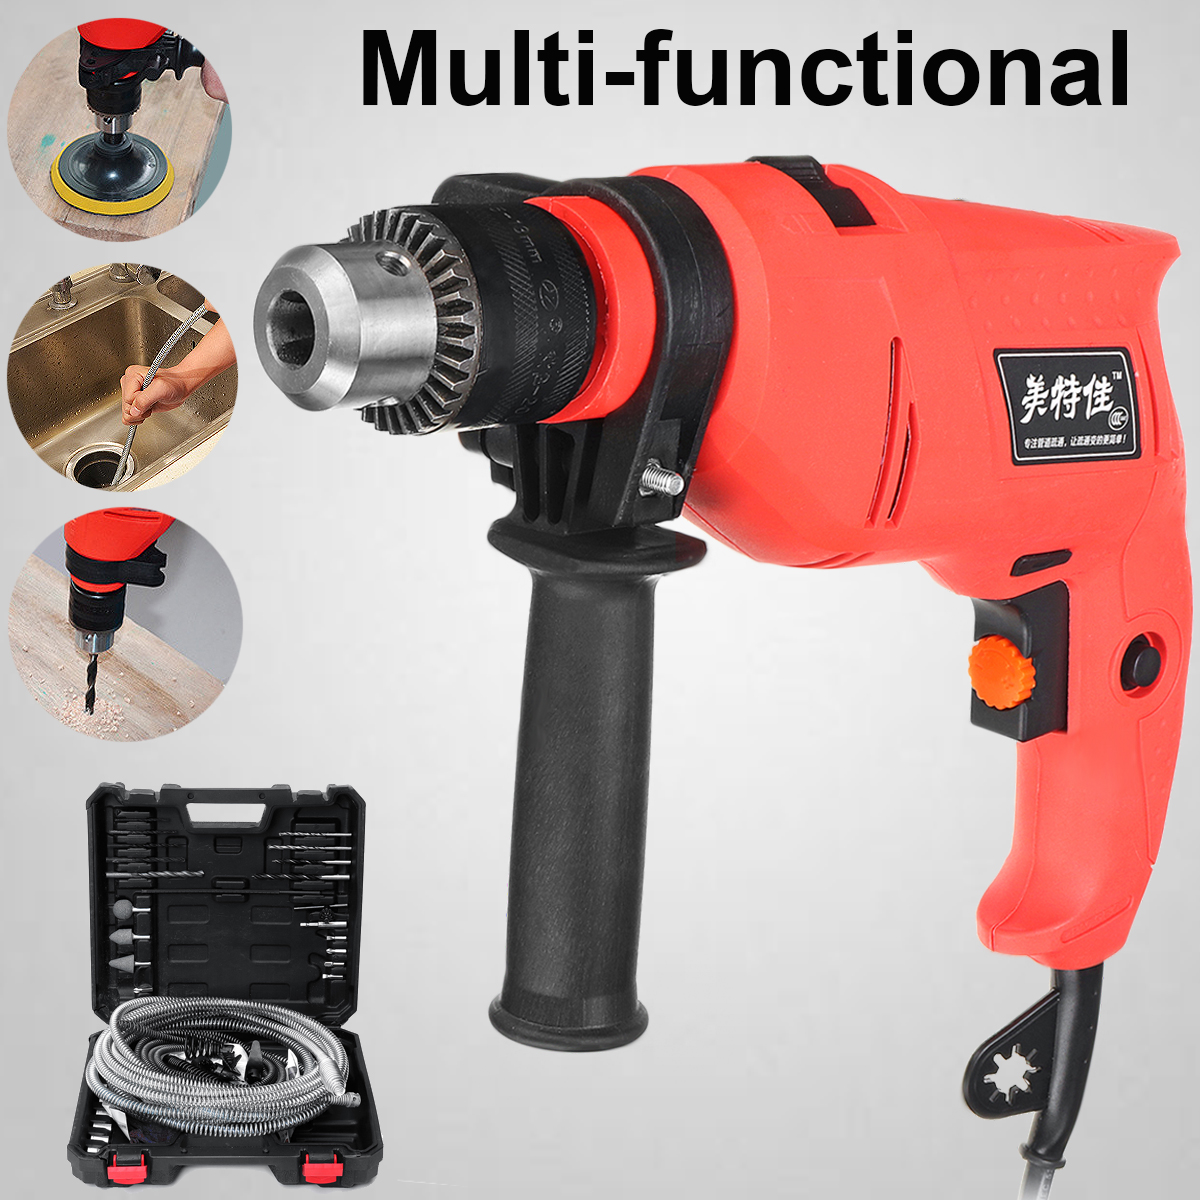 Multifunction Electric Drain Plumbing Cleaning Tools Kit Auger Unclog Wire Drainer Power Drill